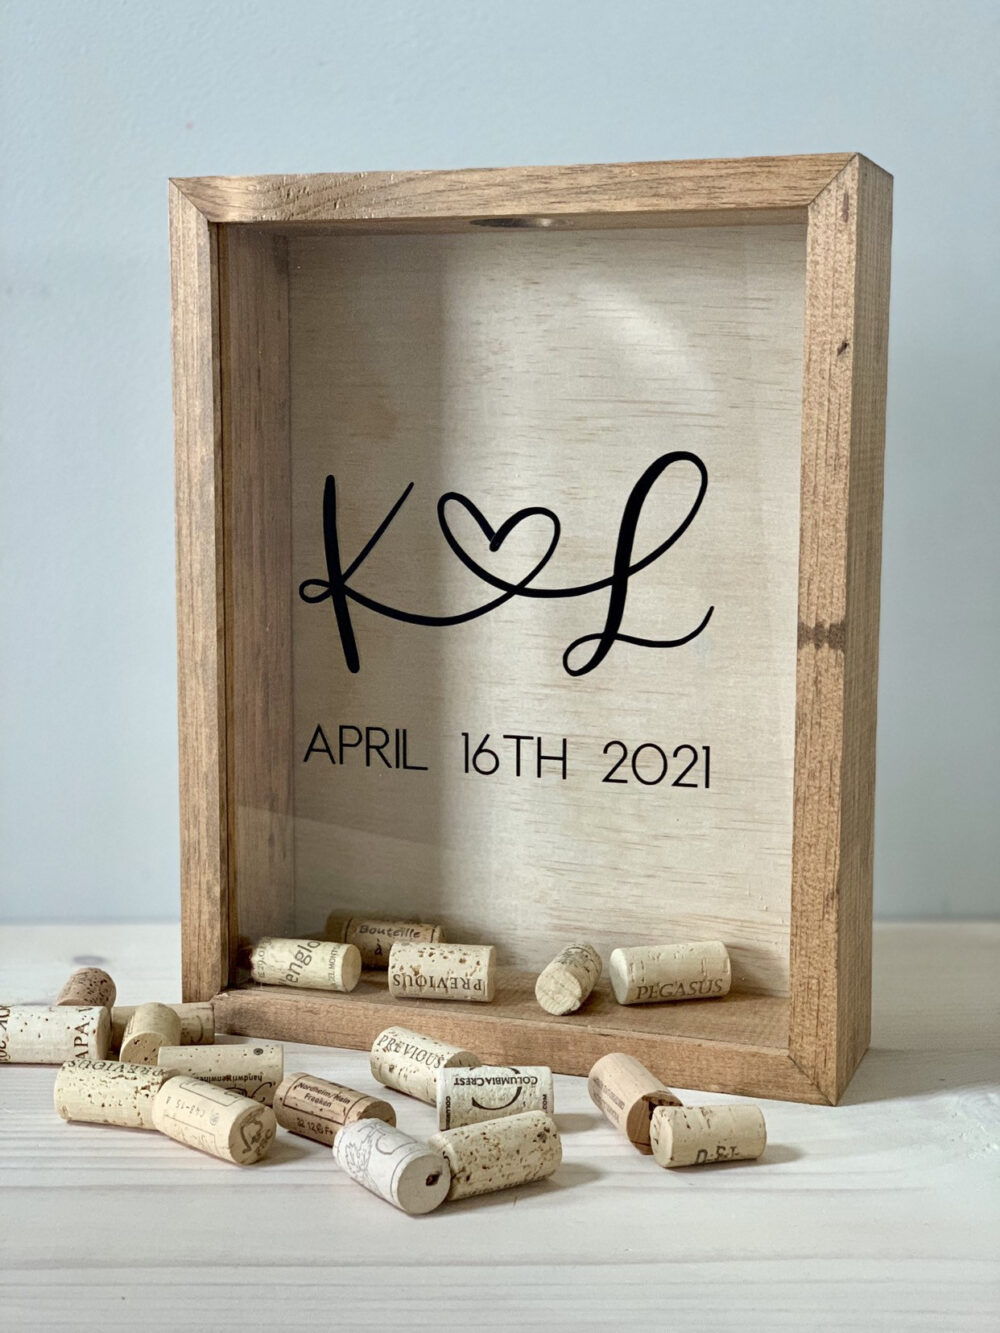 Wine Cork Holder | Bridal Shower Gift Wood Guest Book Shadow Box For Corks, Photos, Messages, Flowers & More 10x12 Inches